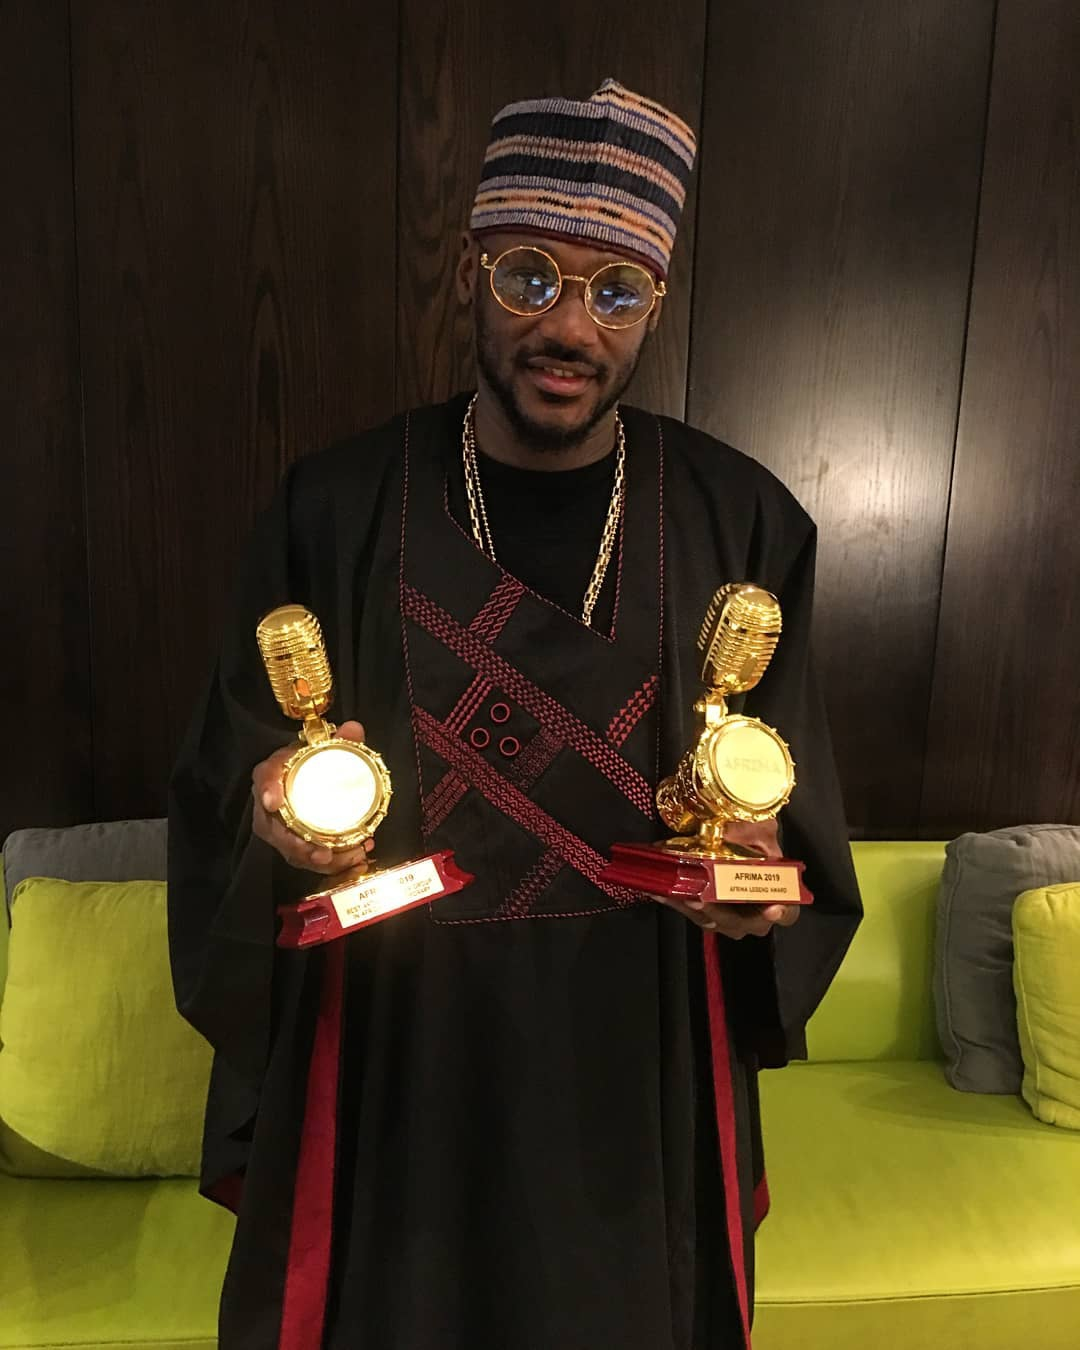 Awilo, 2Baba receive legend awards at 6th AFRIMA •Full list of winners